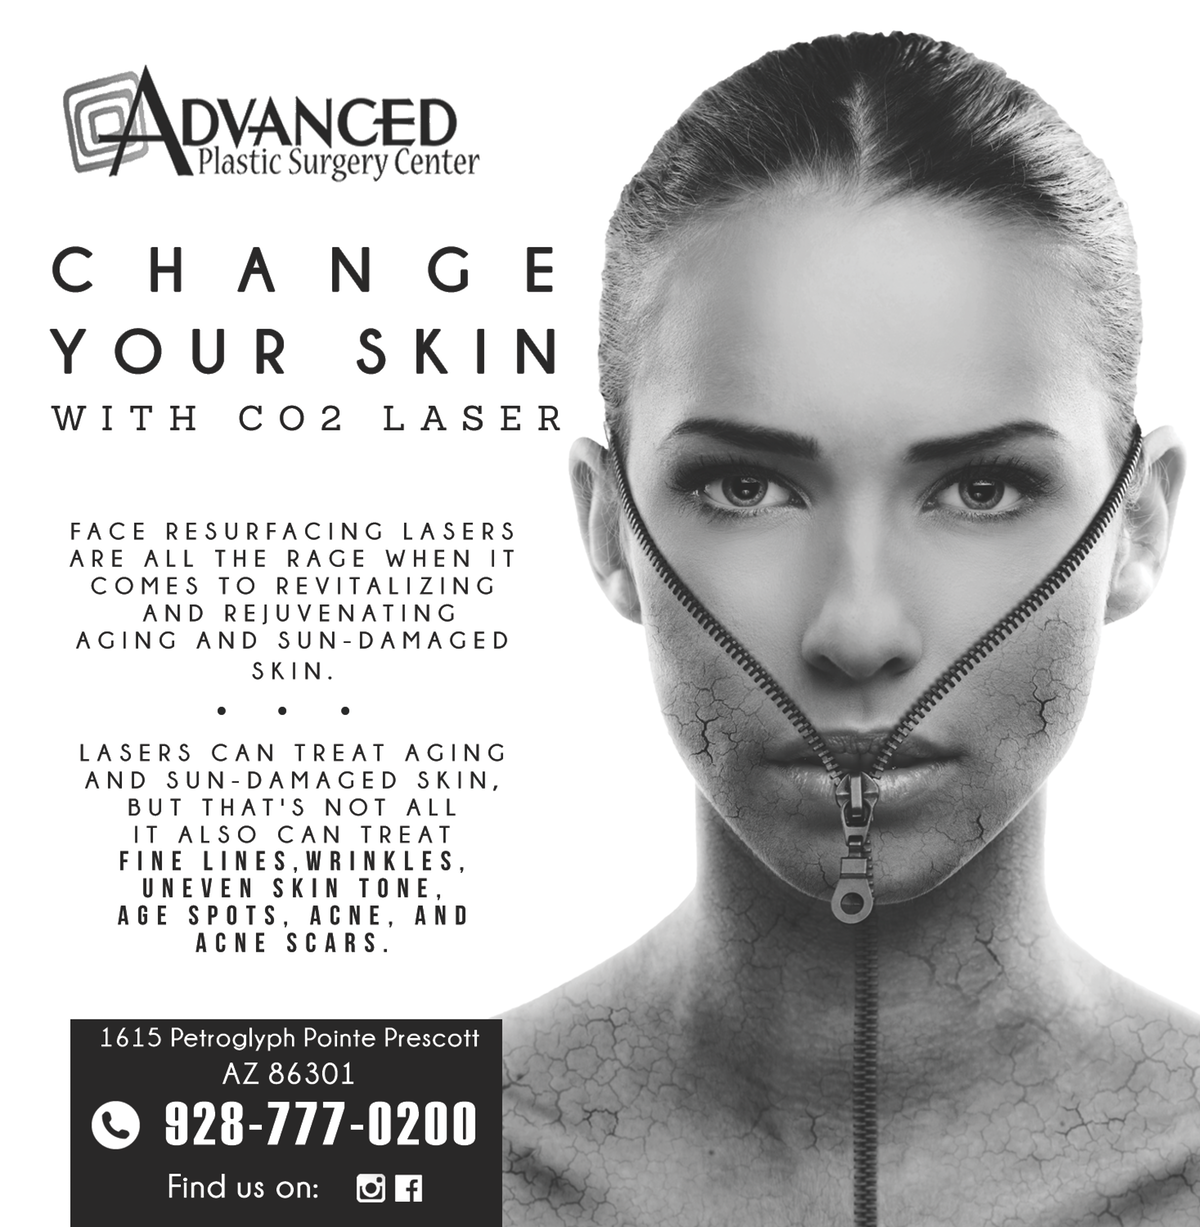 News Paper Add for CO2 Ablative Laser Resurfacing